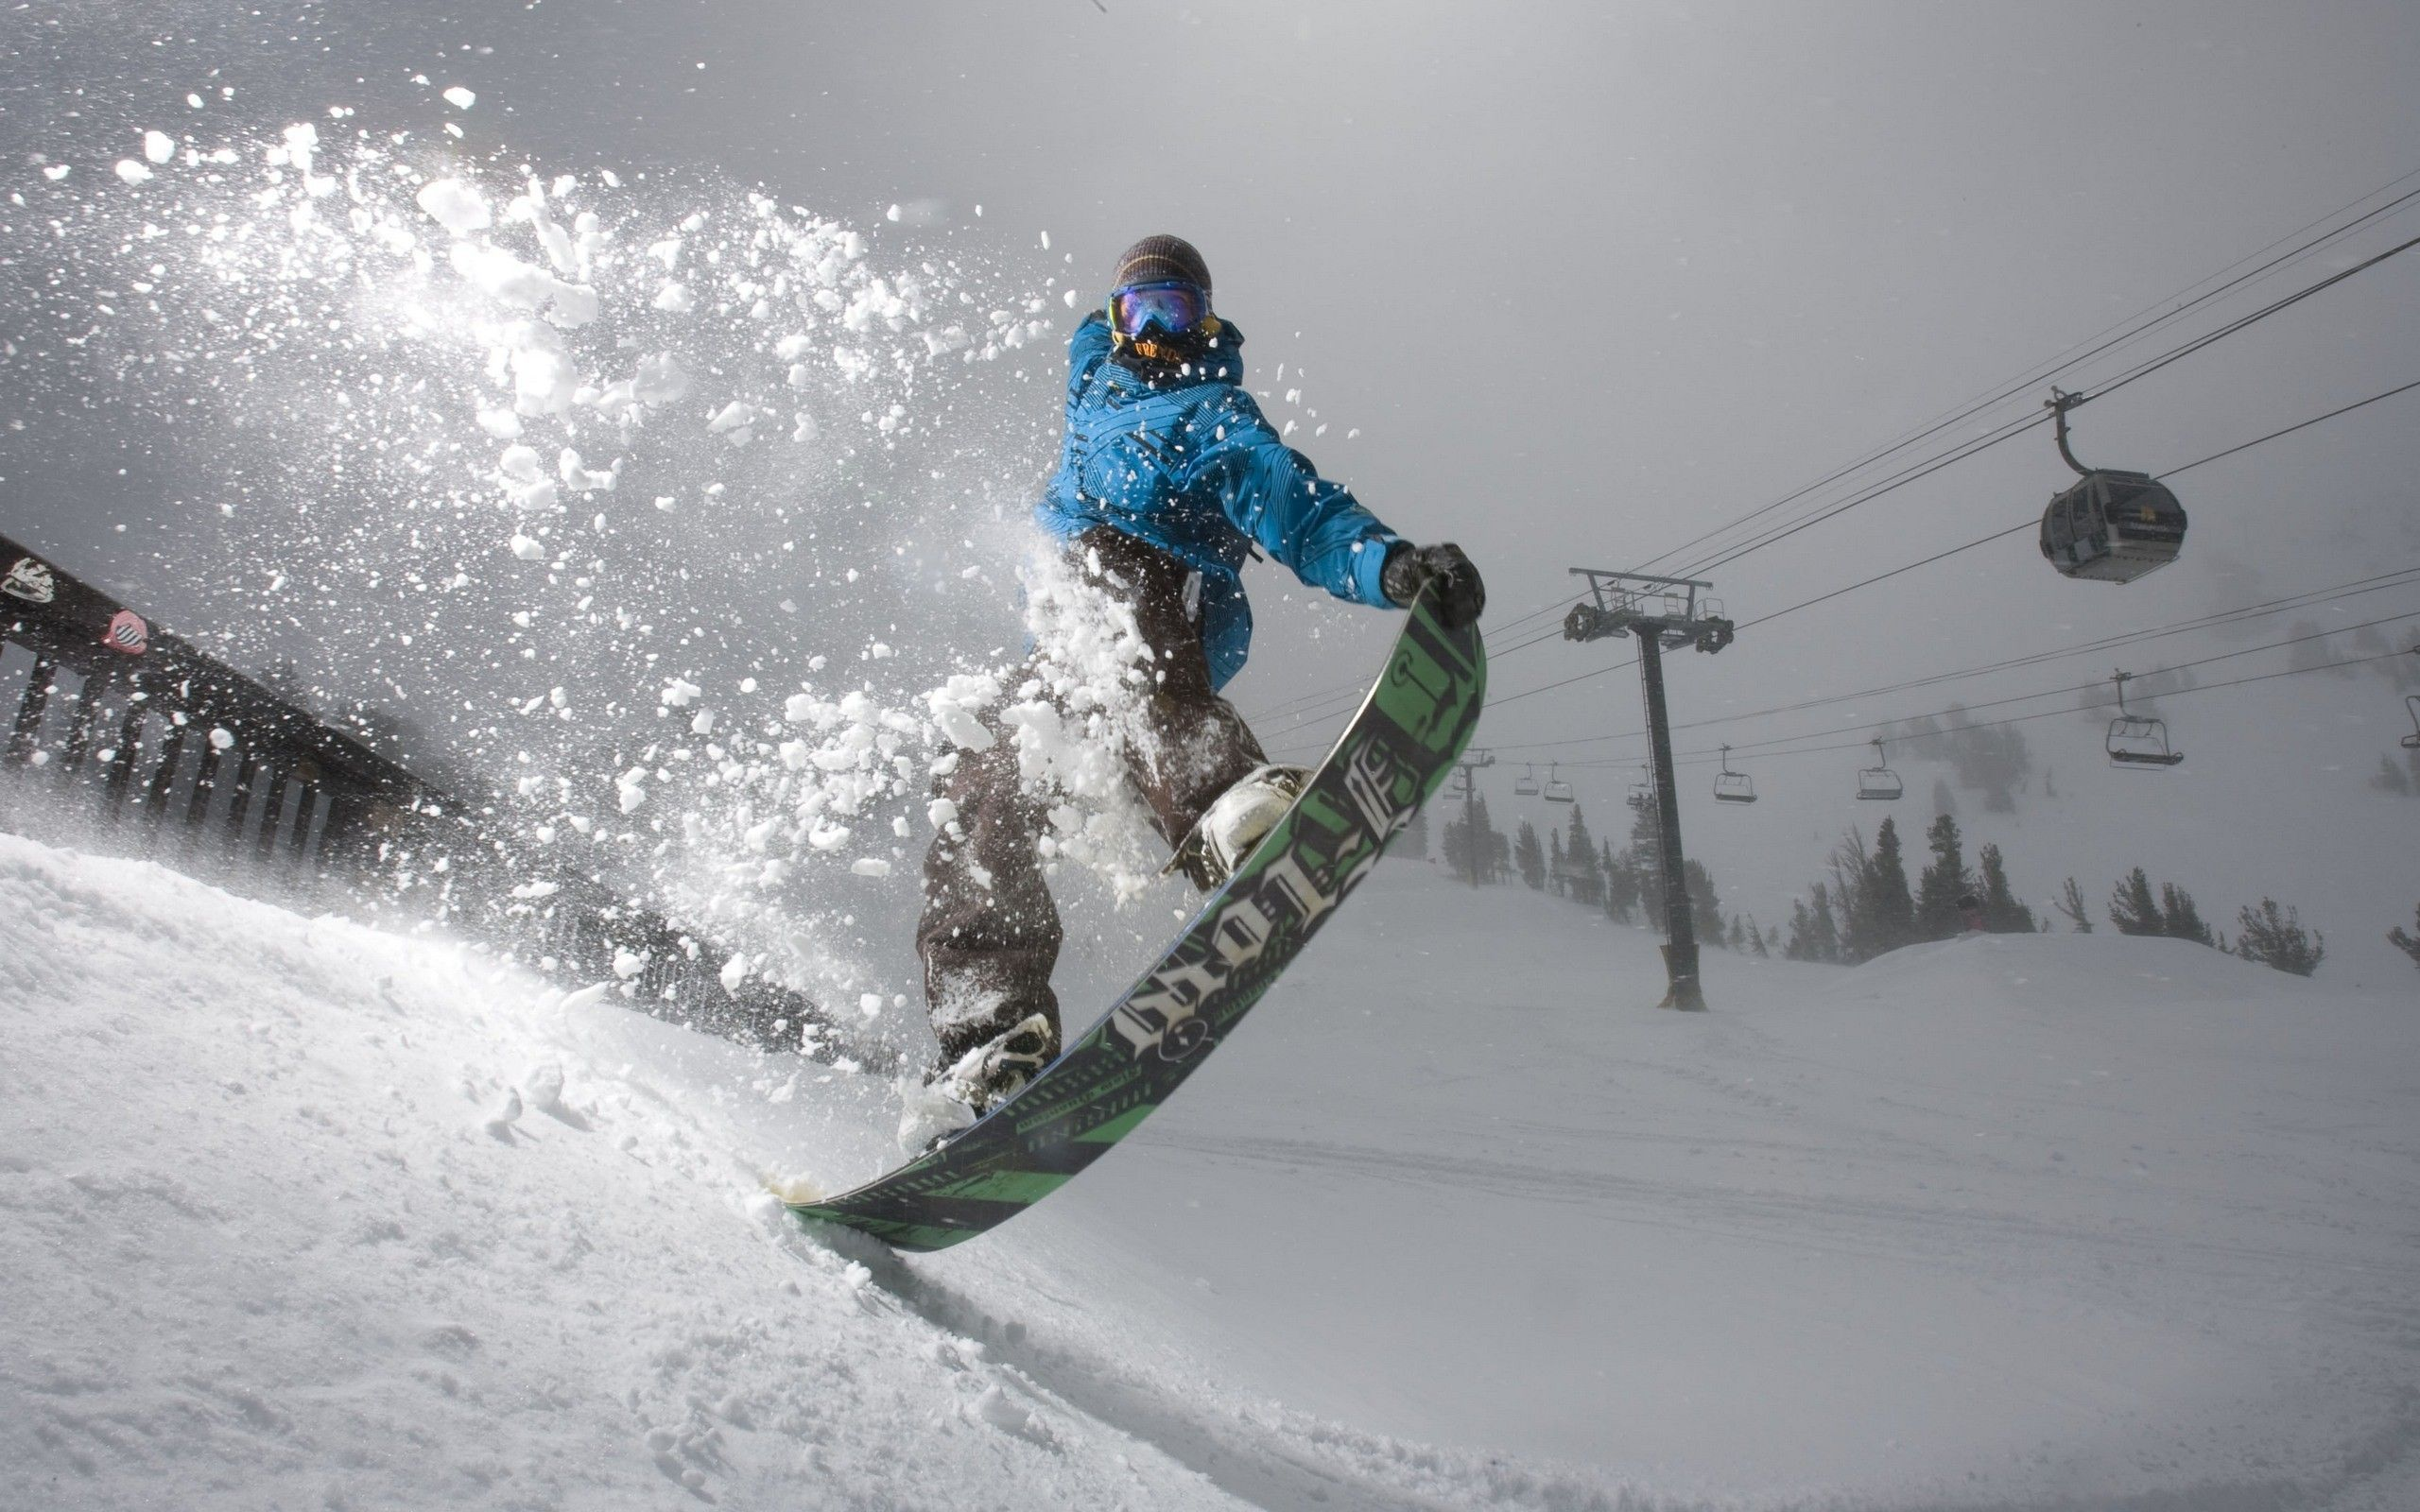 Snowboarding Pictures